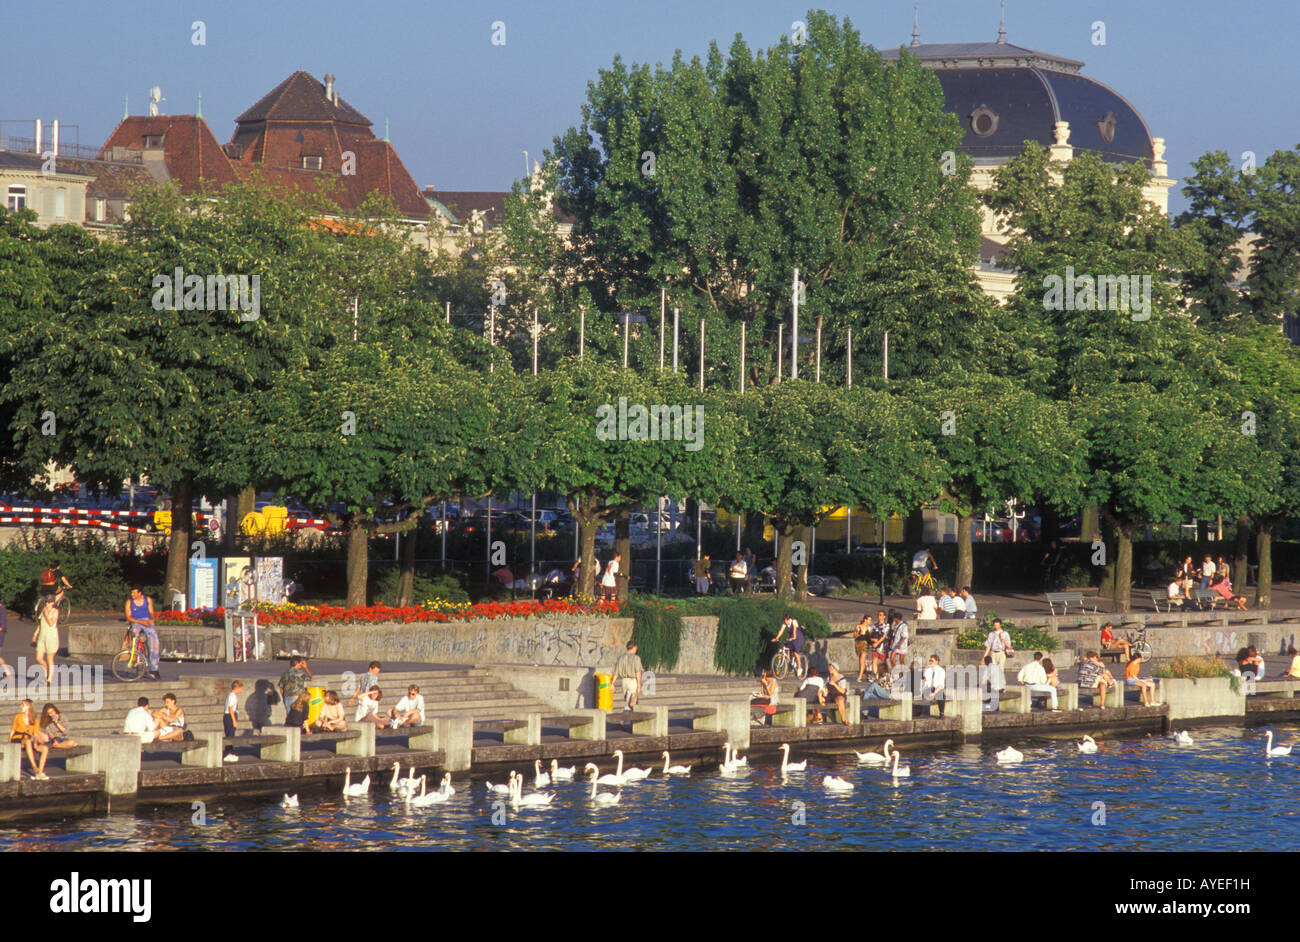 People at the Uto Quai quay close to Zurichsee lake in Zurich Switzerland Stock Photo